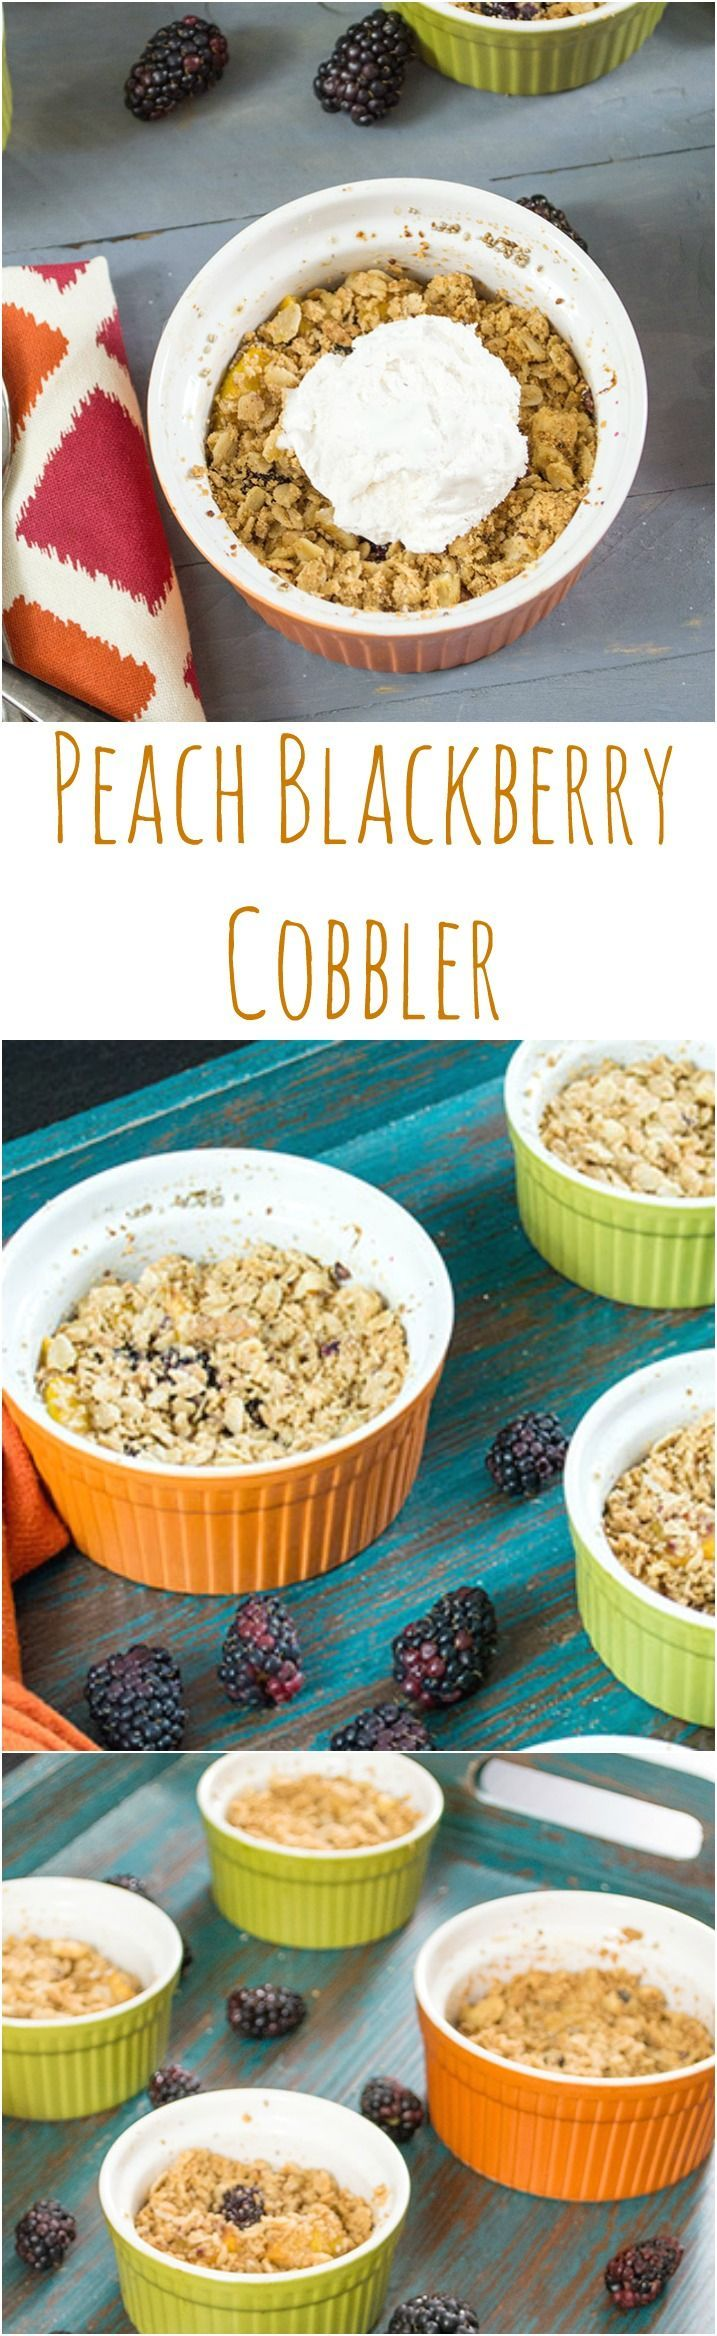 Blackberry Peach Cobbler Recipe  This healthy peach cobbler is easy to make and so delicious! Perfect dessert that's simple to make. No butter! Vegan, gluten free, healthy recipe.